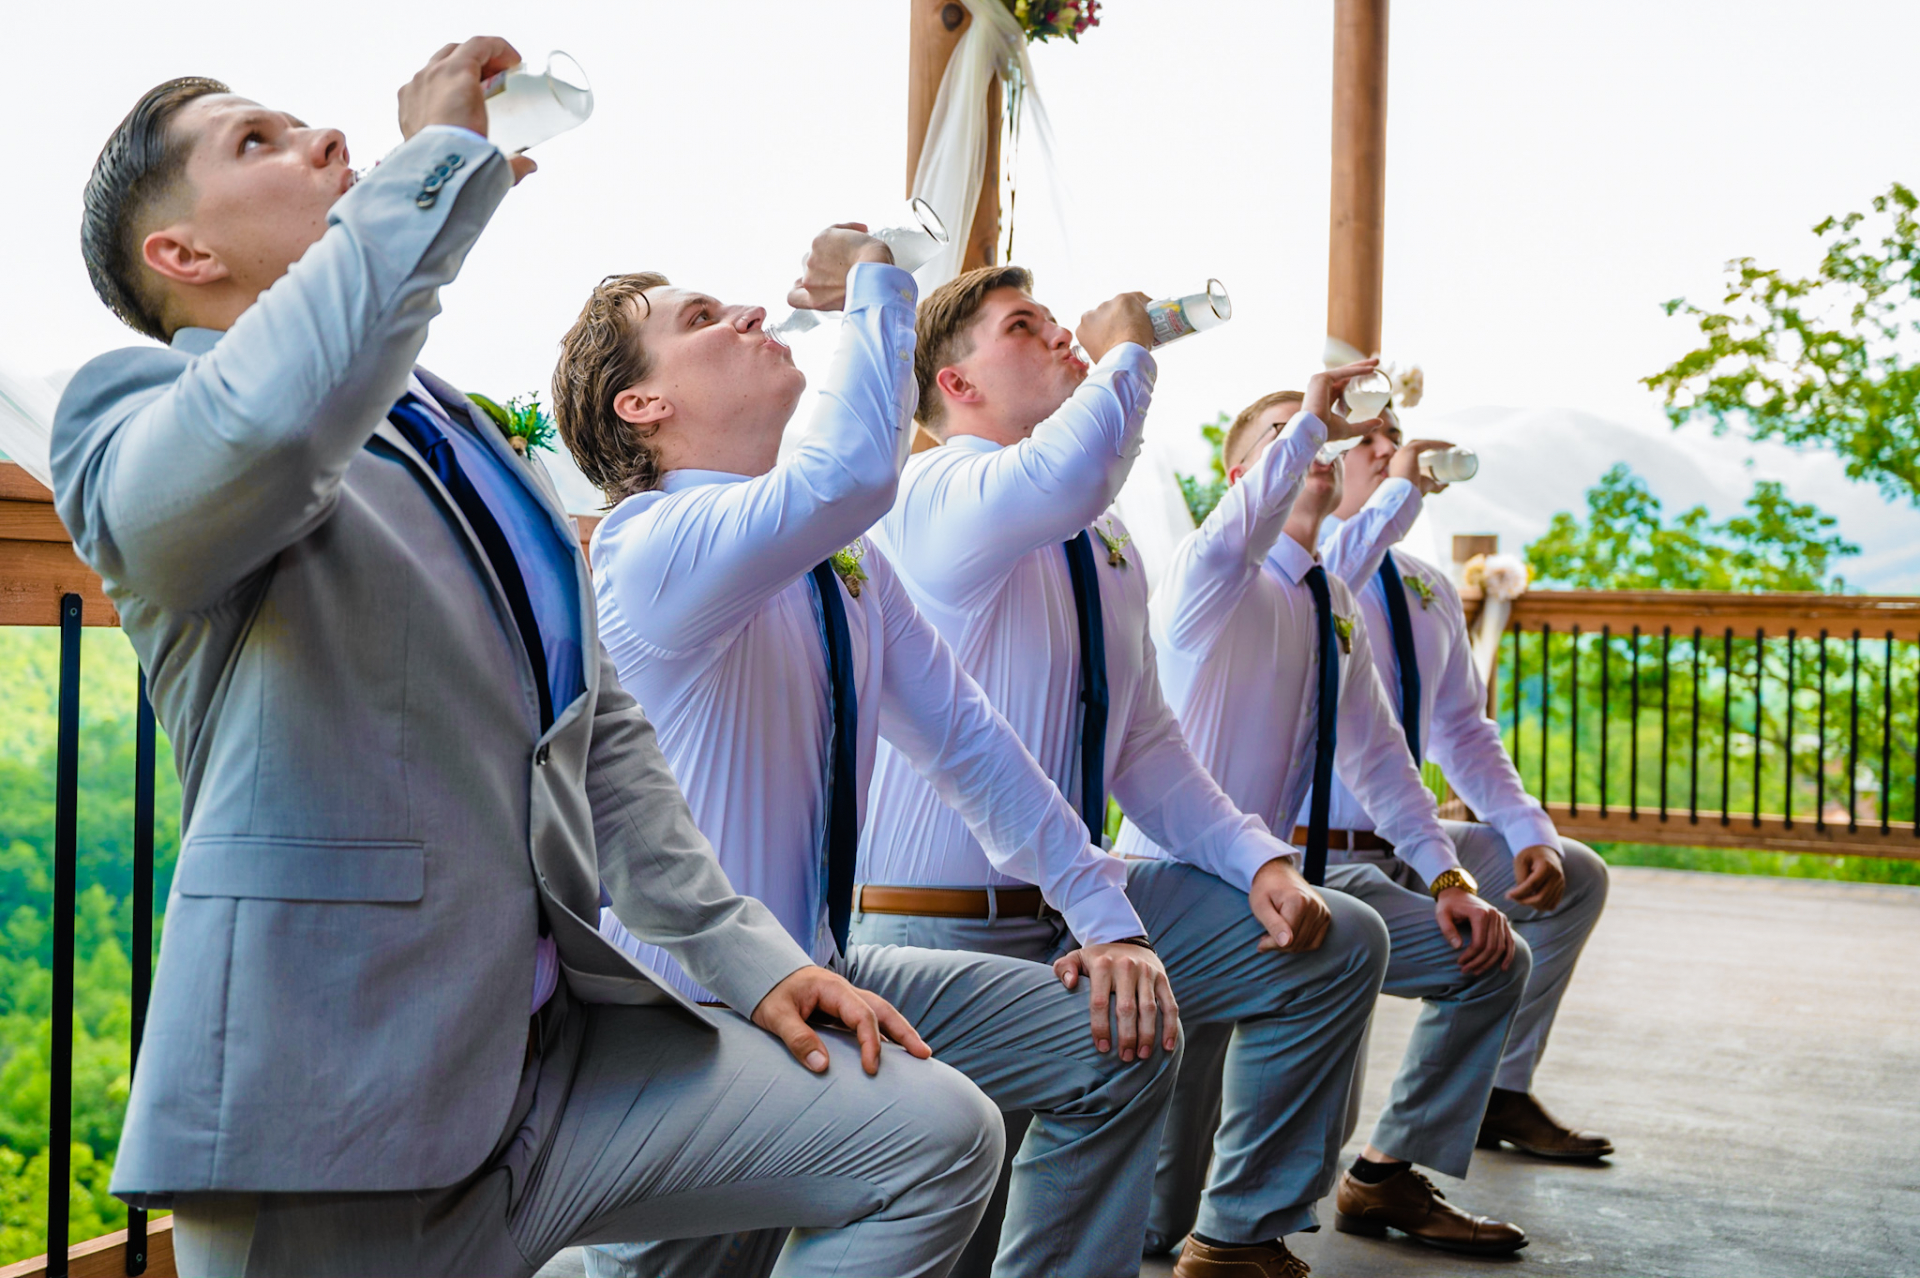 Pigeon Forge - Timber Top Cabins Elopement Venue | the groom and groomsmen got on one knee to drink the entire bottle